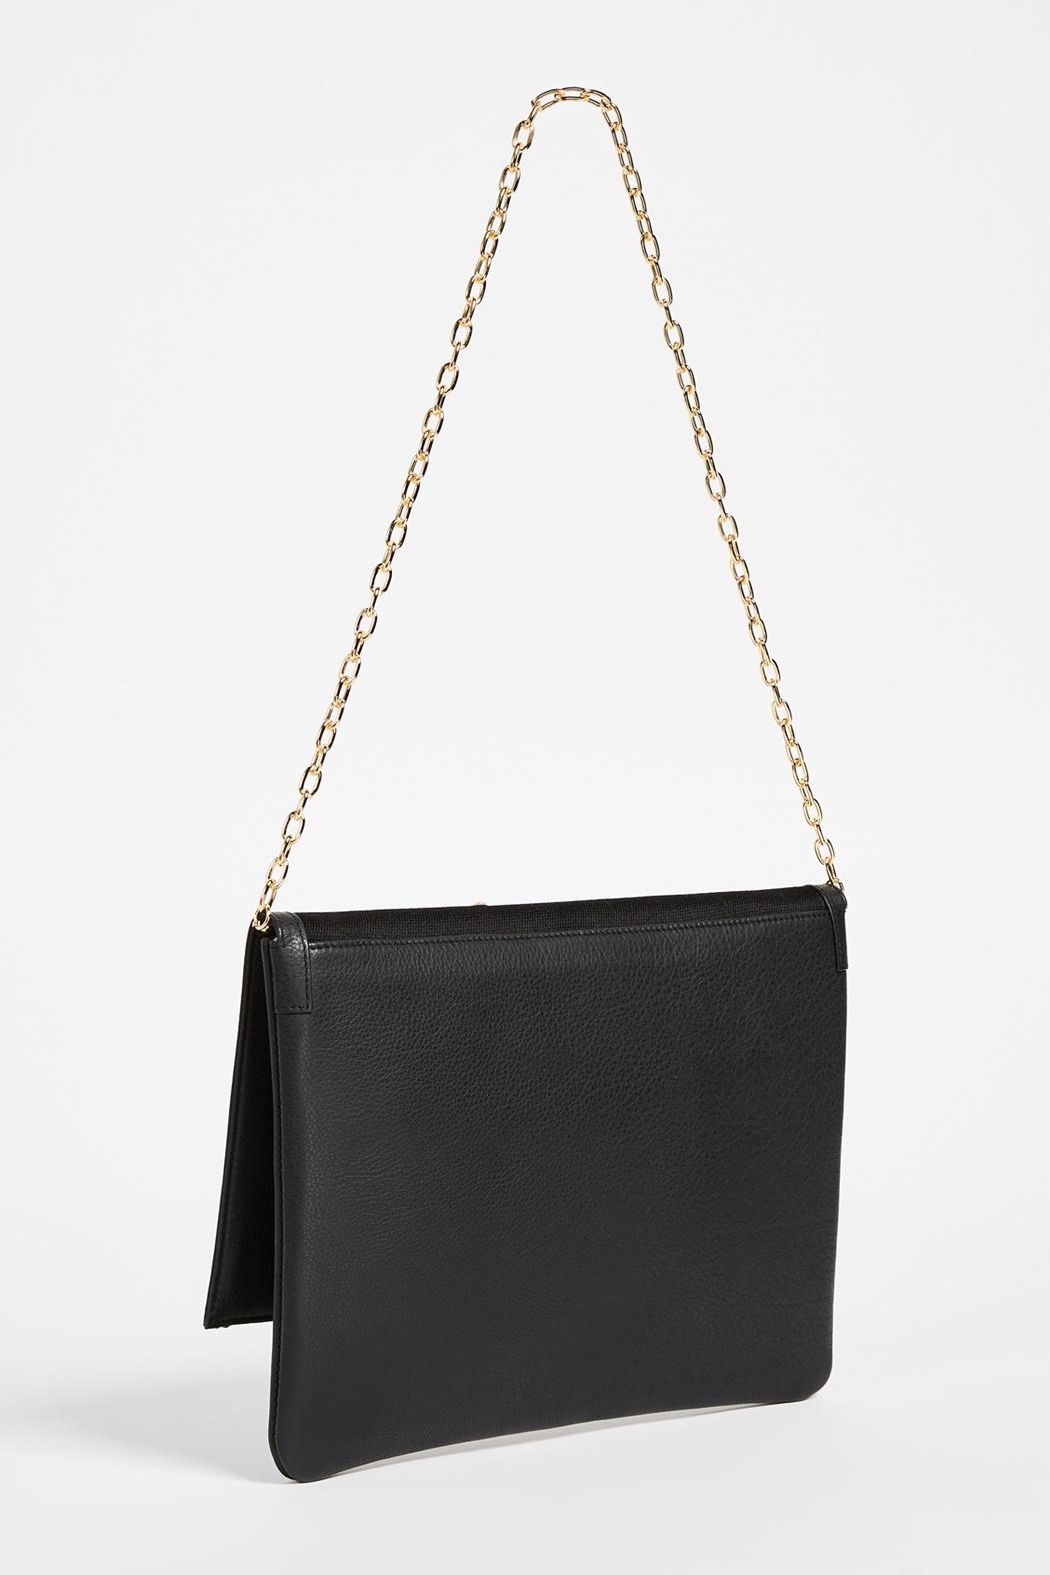 Lizzie Fortunato Port Call Clutch - Front Full Image